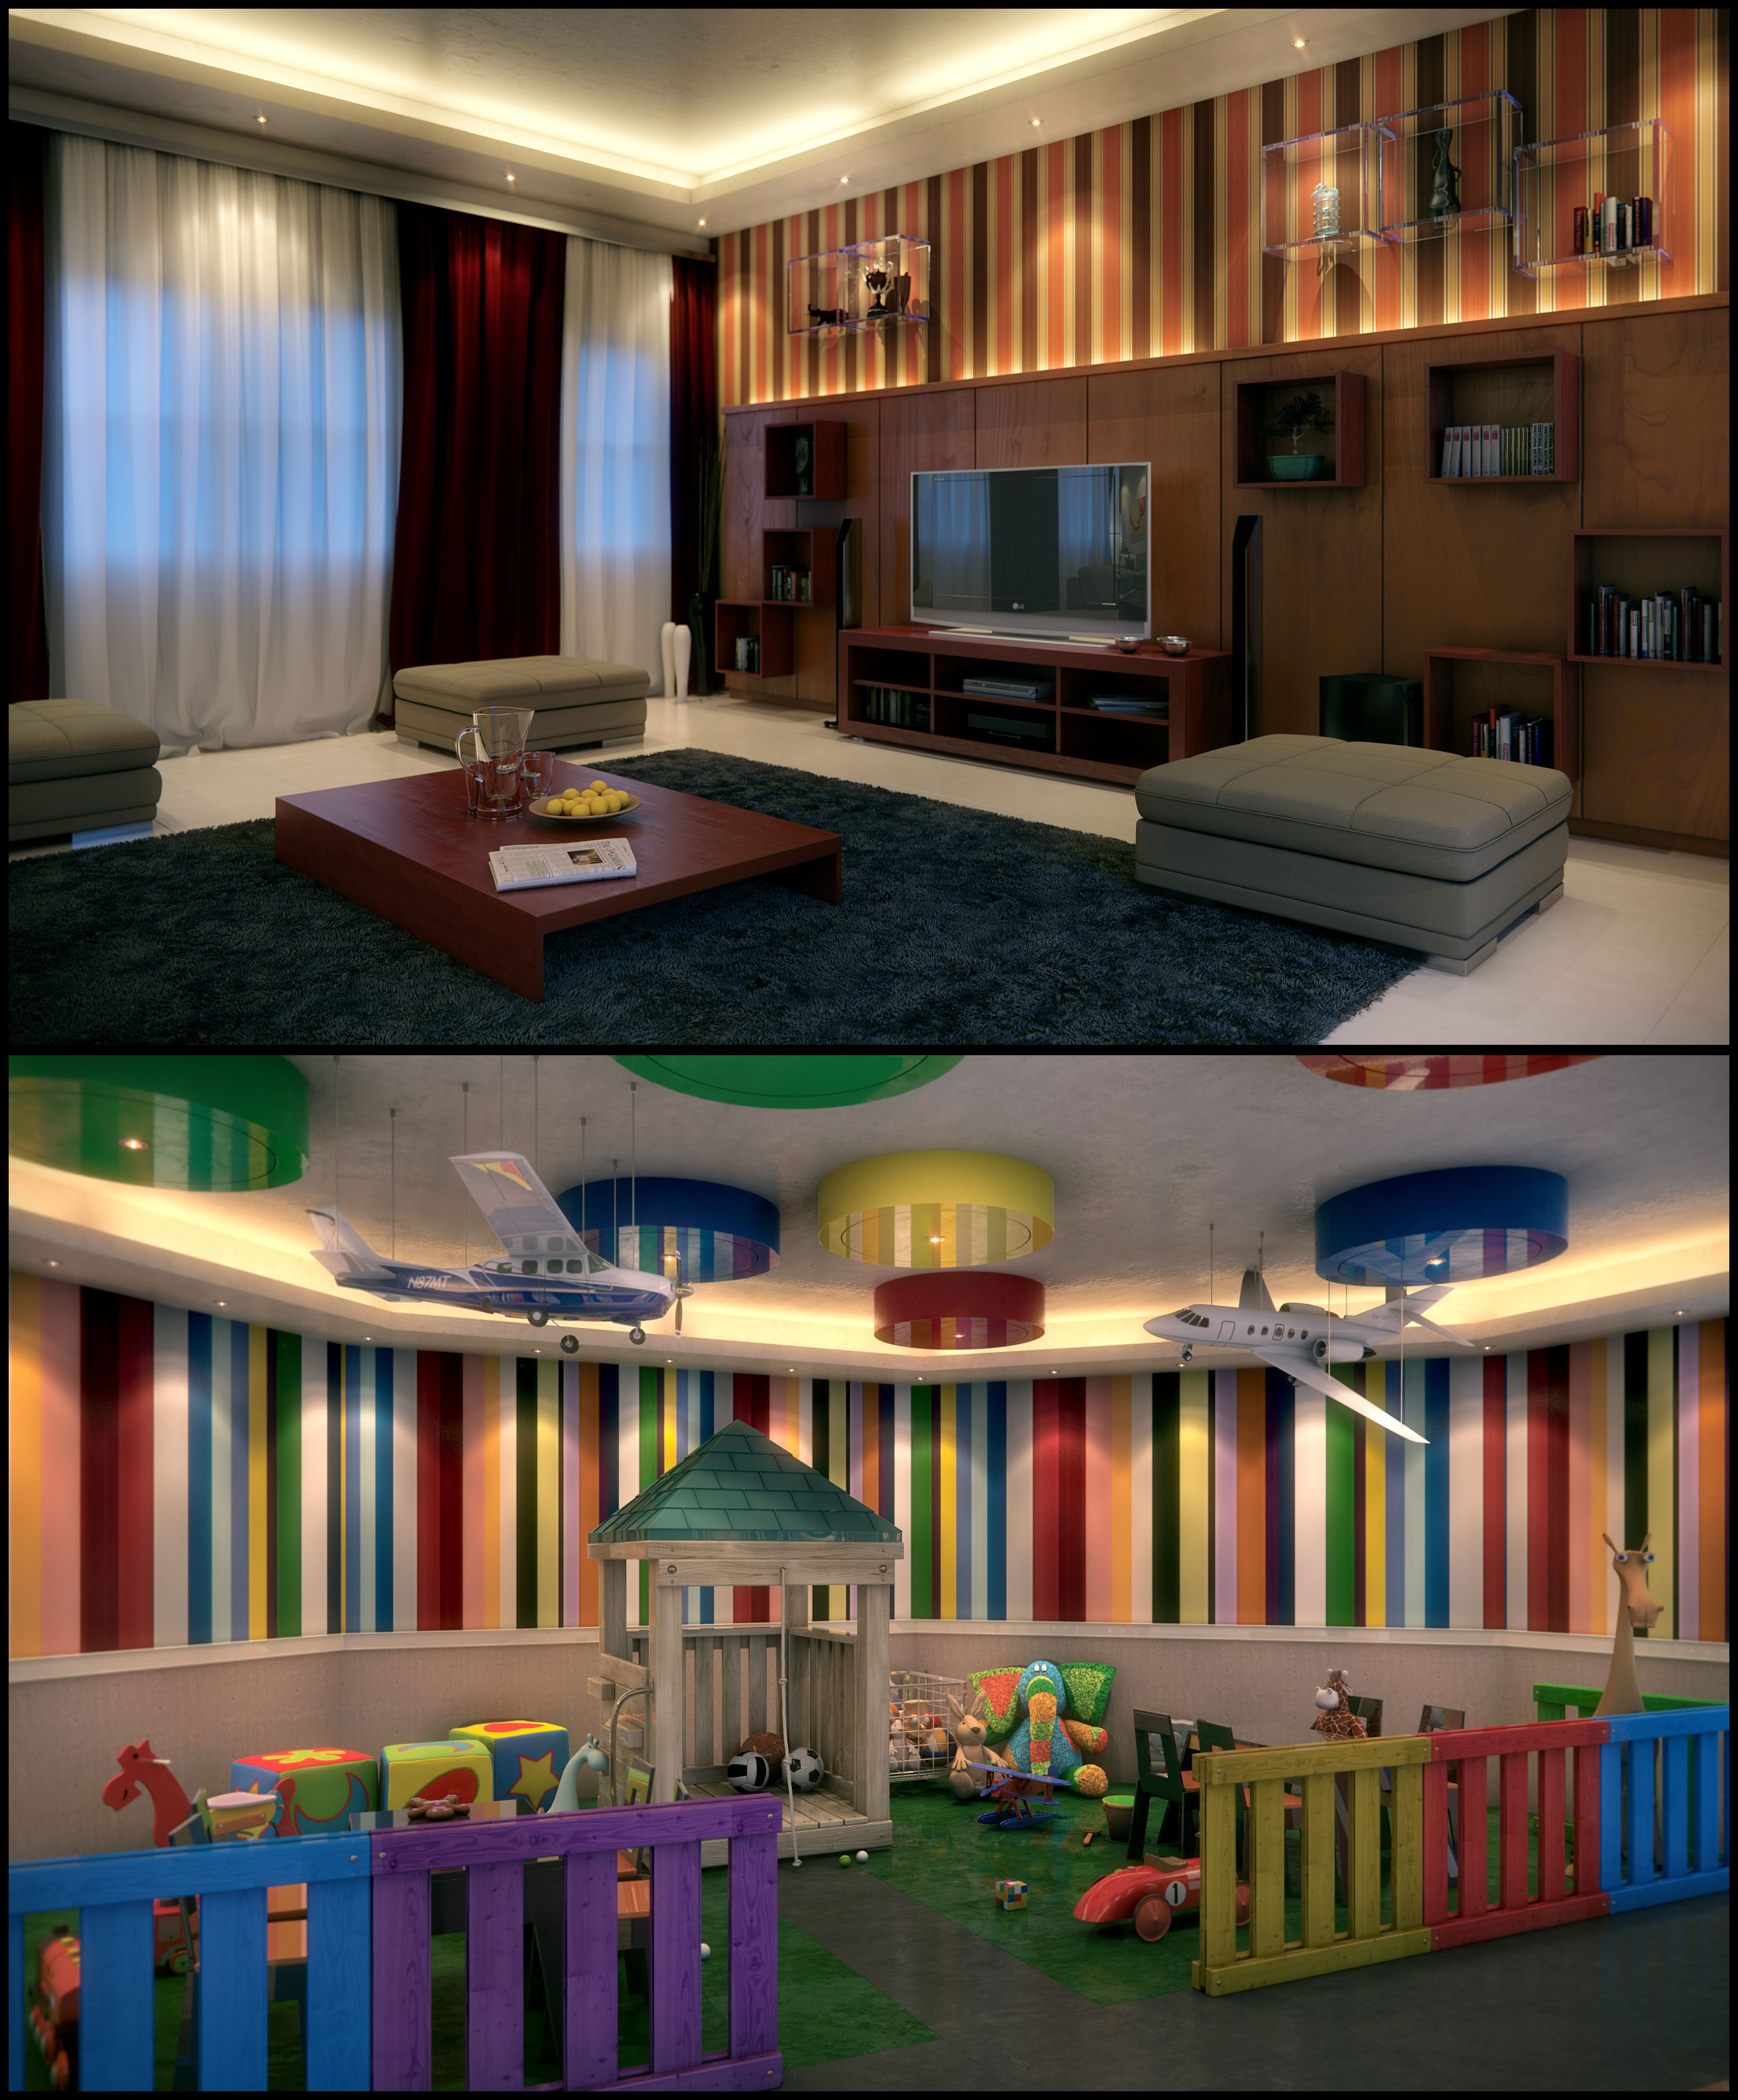 Toy Room And Living Area By Kulayan3d On DeviantArt